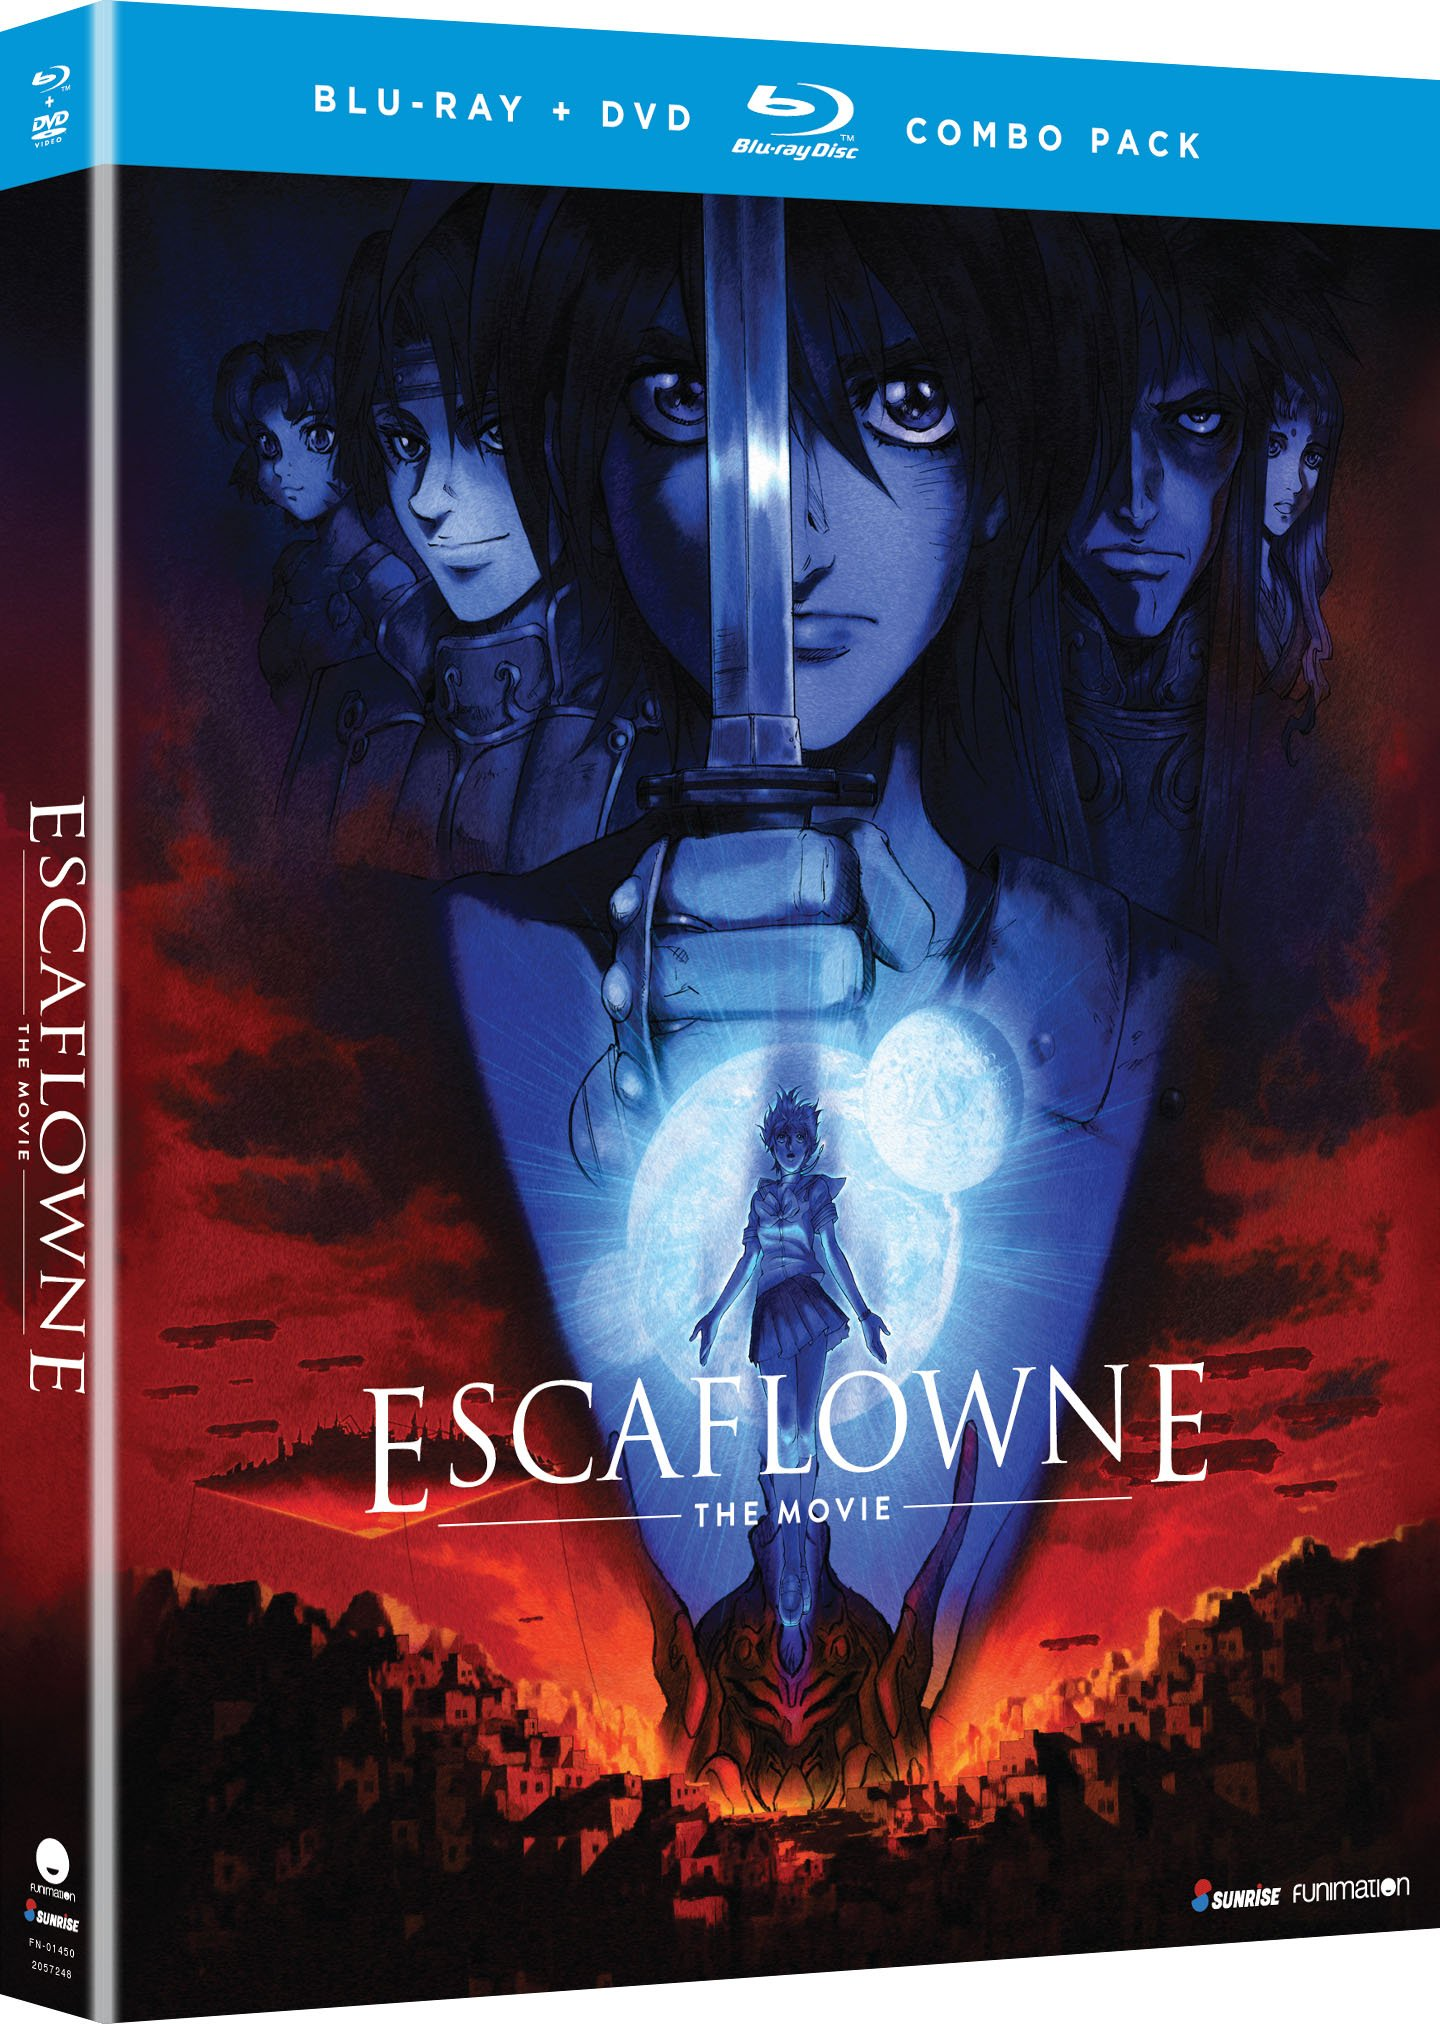 Blu-ray : Escaflowne: The Movie (With DVD, 2 Disc)